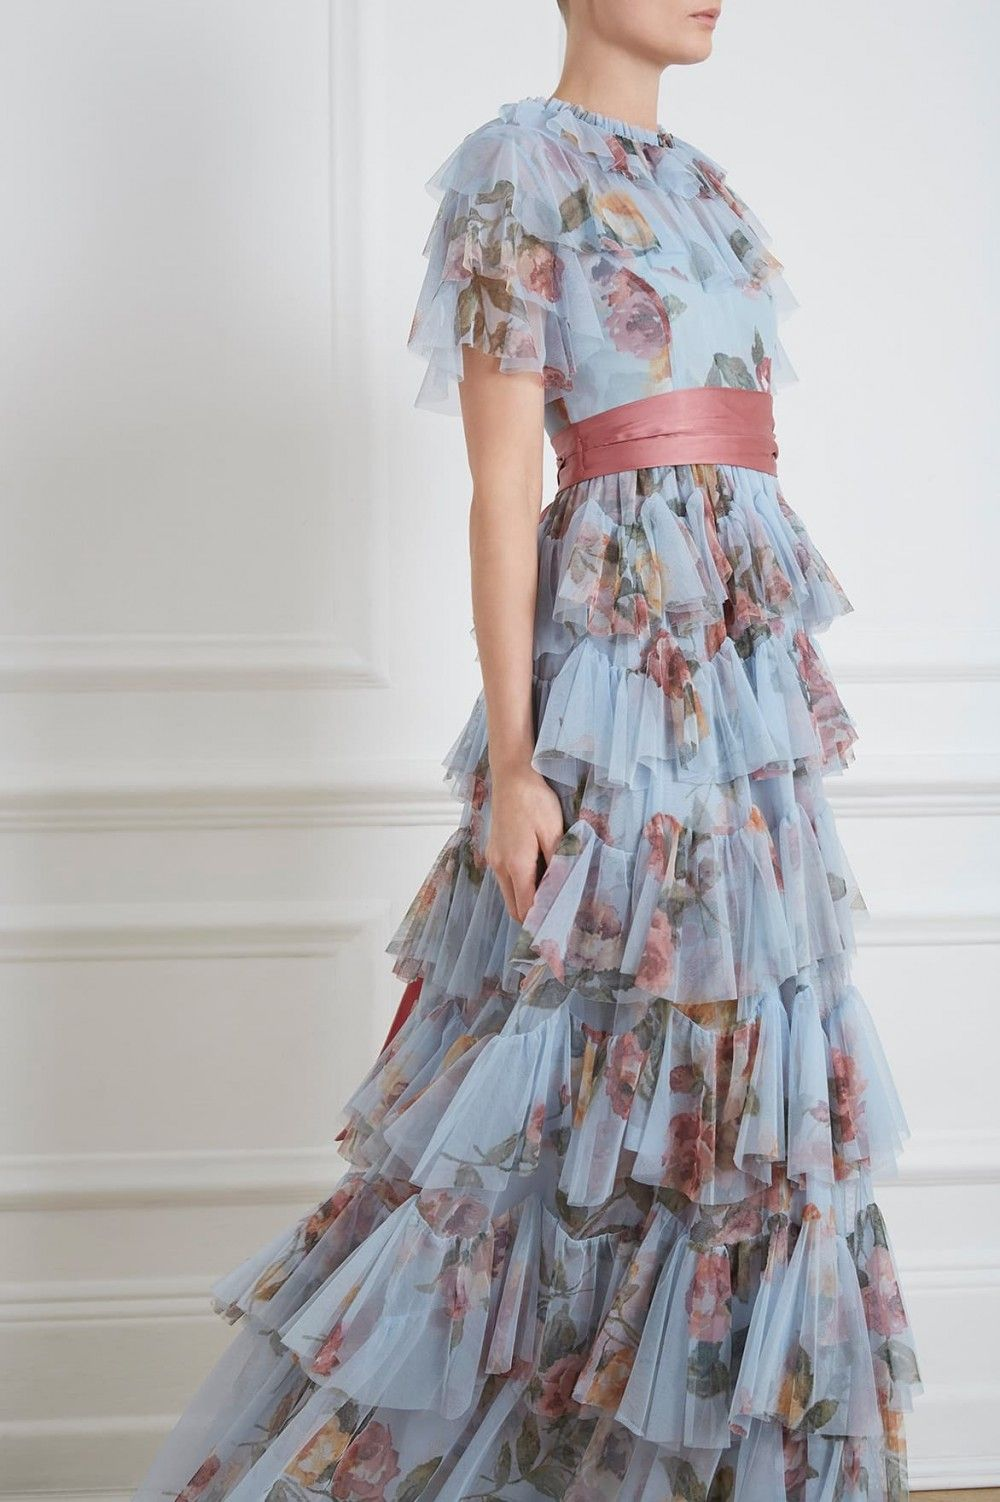 ad36920a84 Venetian Rose Tulle Gown in Dusk Blue from the Needle & Thread PS19  Collection